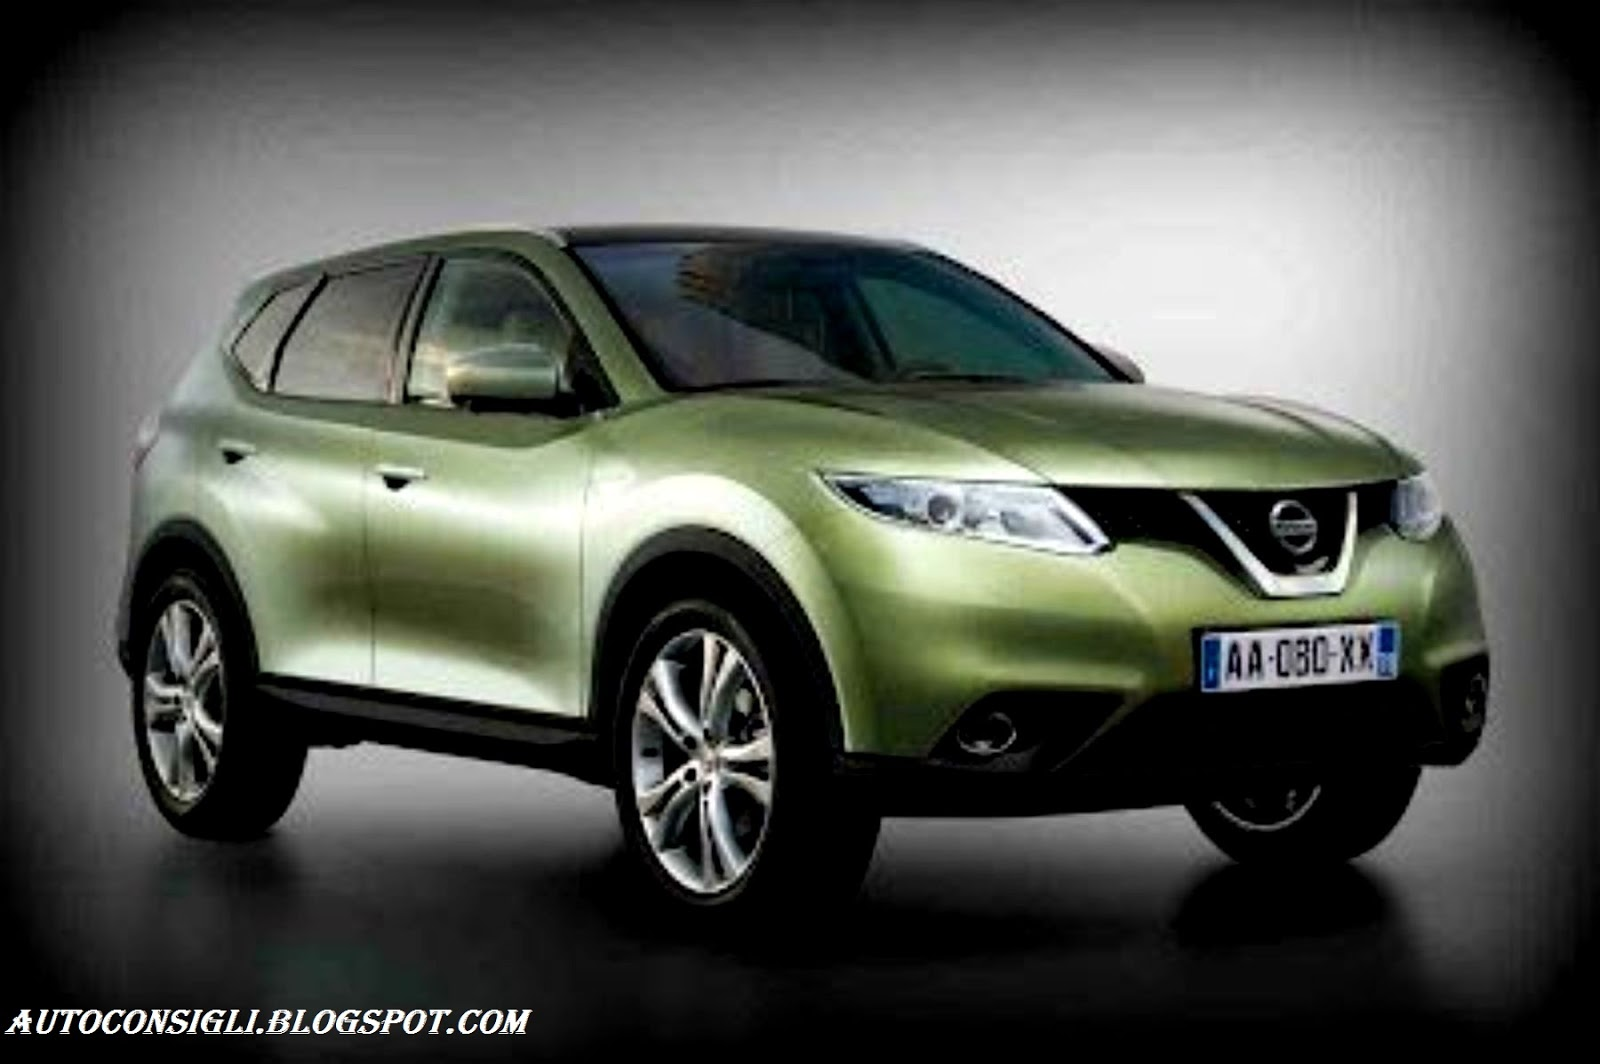 car al top 33 nissan qashqai 2014 dotata di linea muscolosa. Black Bedroom Furniture Sets. Home Design Ideas